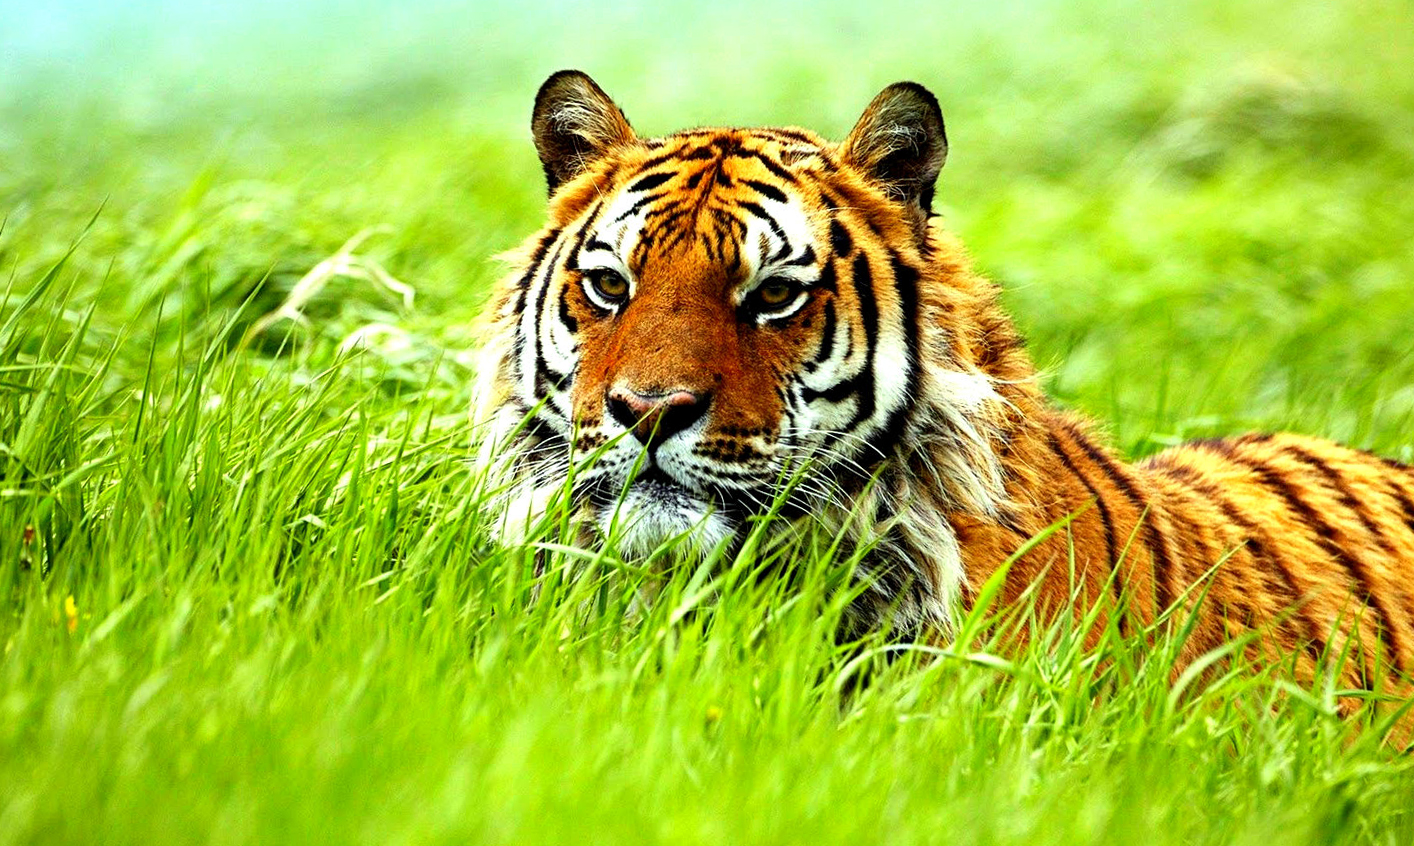 78 wild animals wallpapers on wallpapersafari - Hd wilderness wallpapers ...